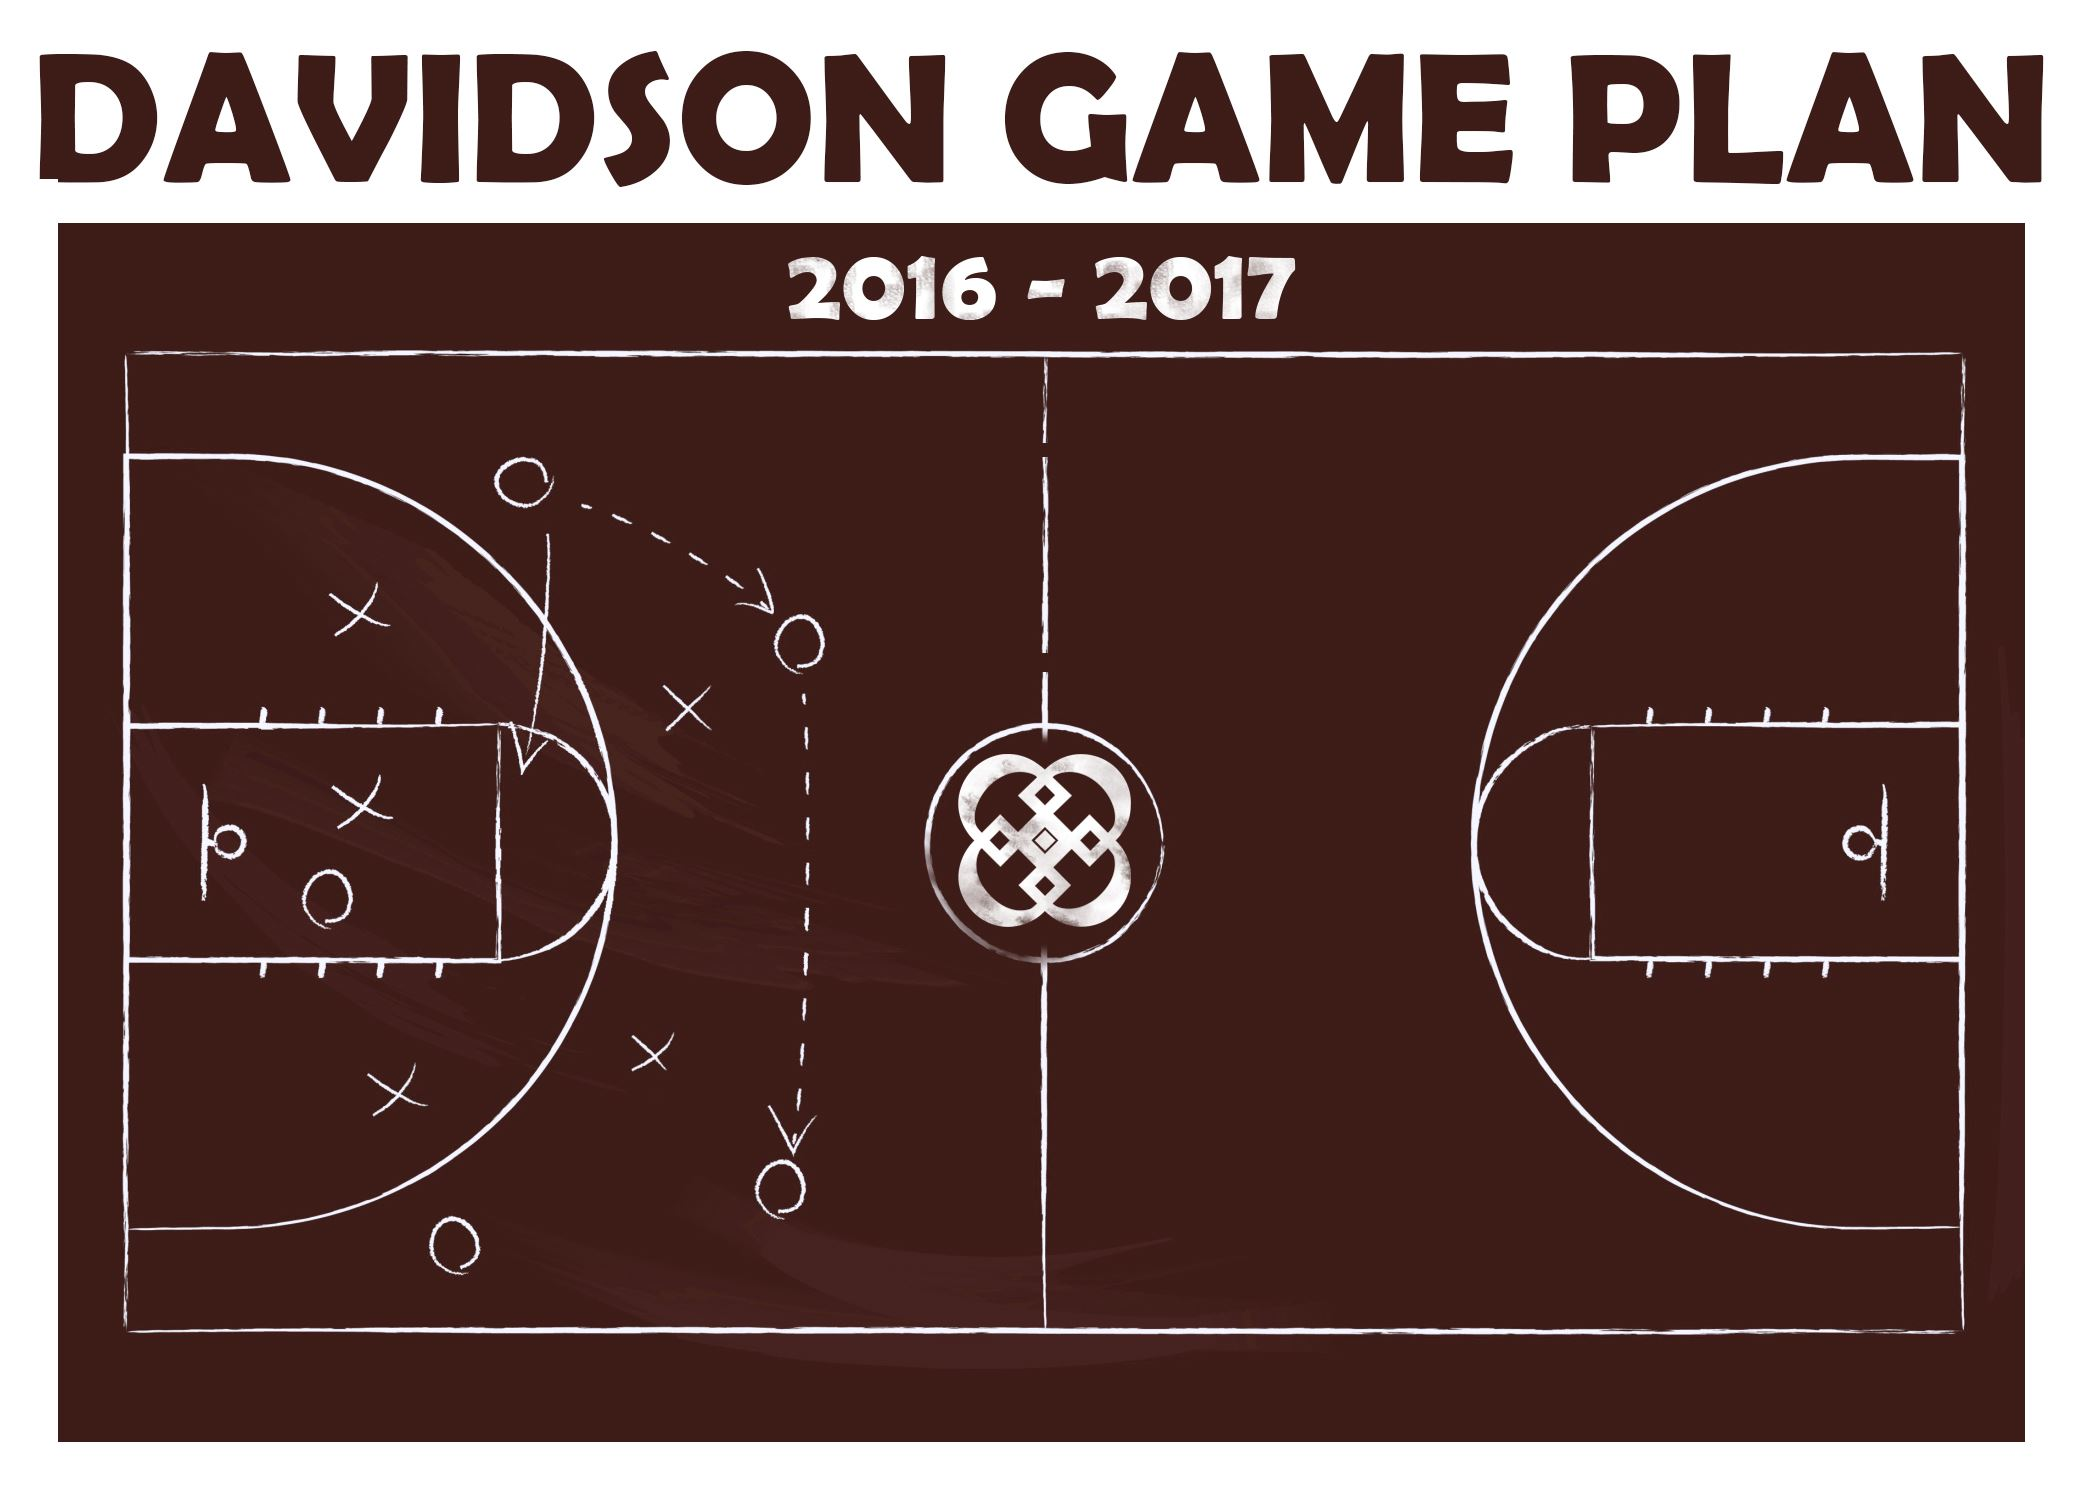 Davidson Game Plan image